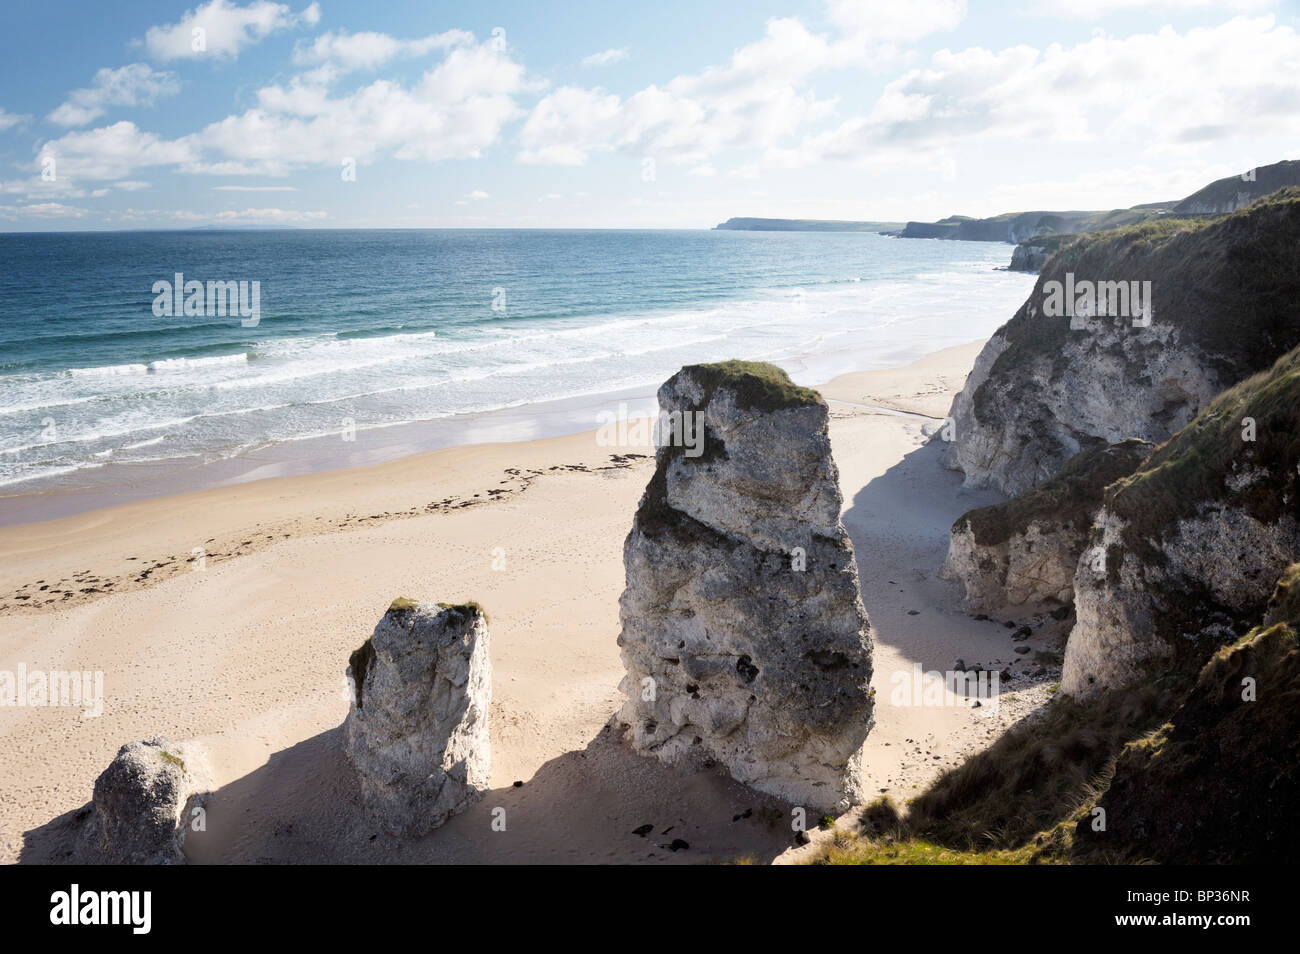 Deserted beach with footprints at the White Rocks between Portrush and Bushmills, Northern Ireland. Eroded limestone - Stock Image